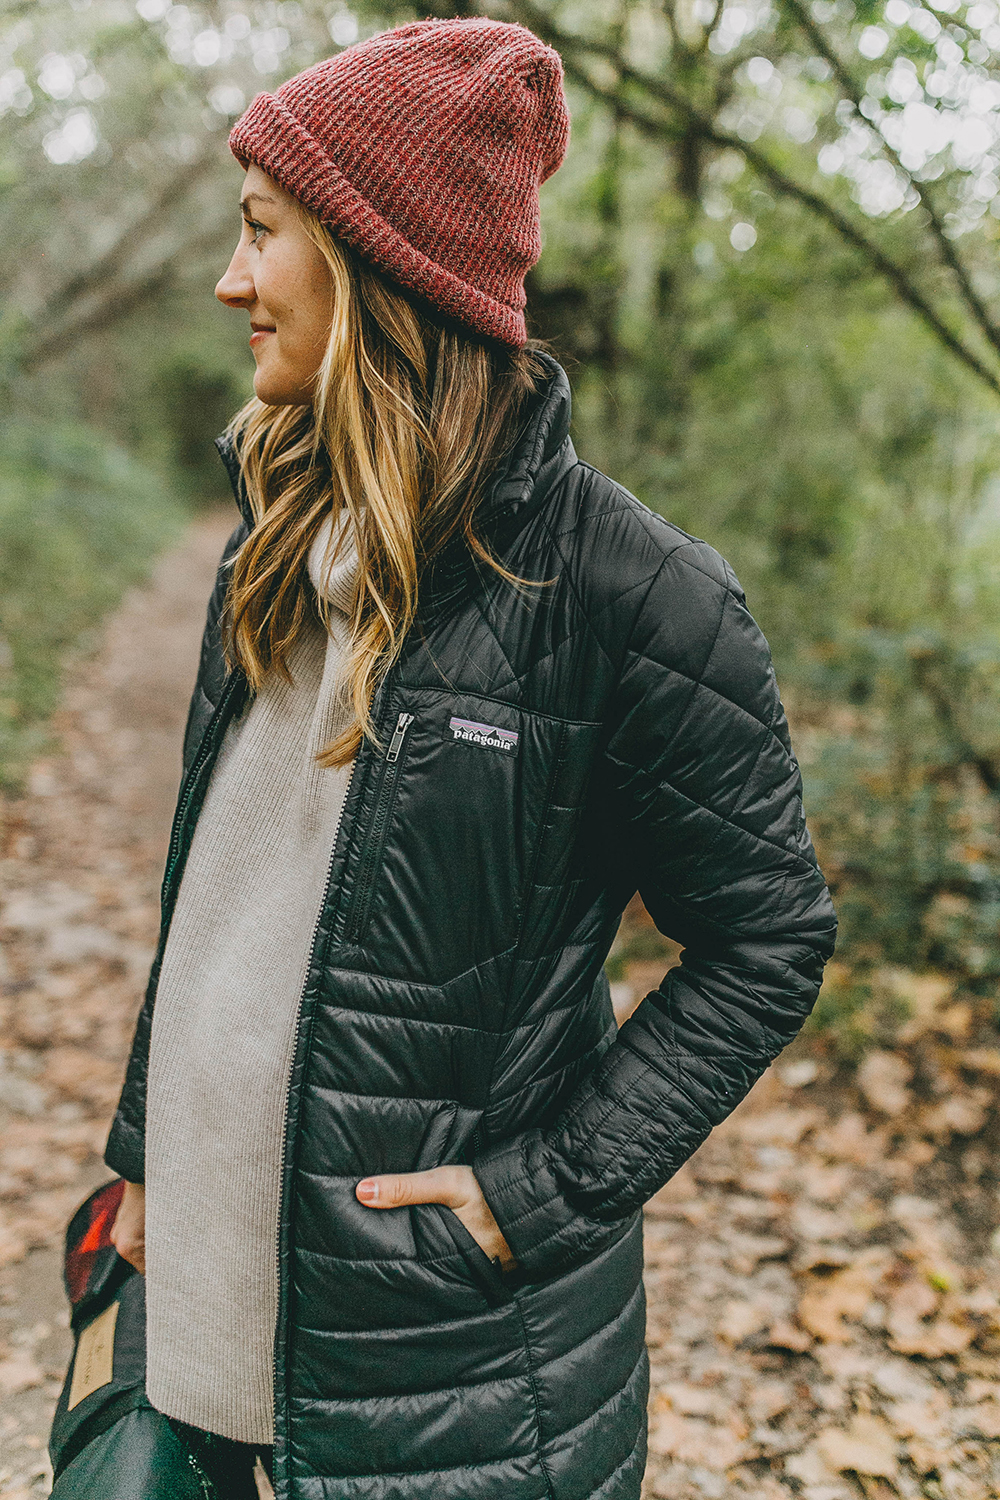 livvyland-blog-olivia-watson-austin-texas-fashion-lifestyle-blogger-greenbelt-fall-patagonia-radalie-parka-sorel-ainsley-boots-hiking-outfit-backcountry-7